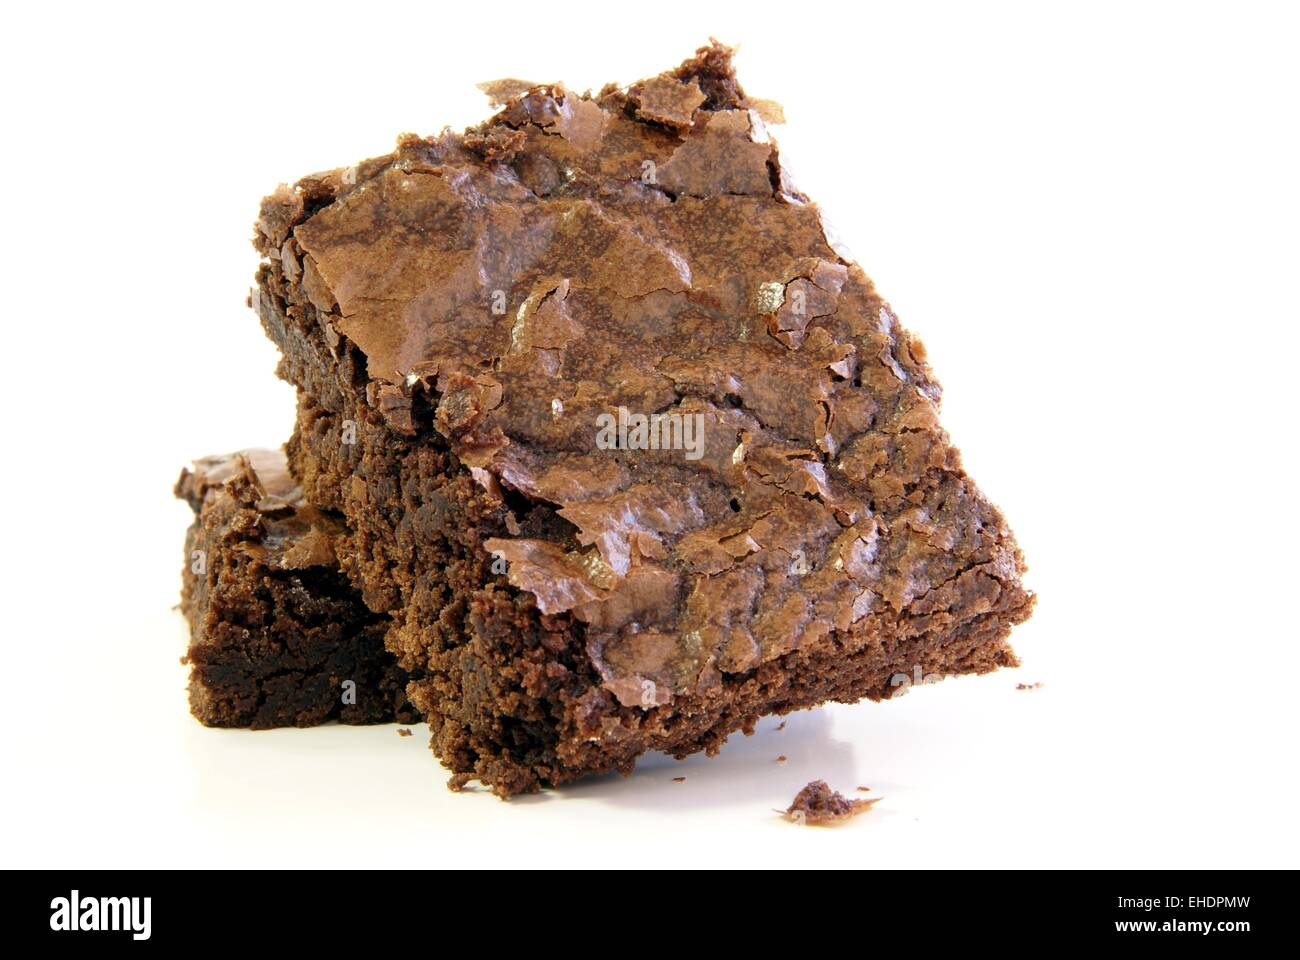 Freshly baked chocolate fudge brownie squares on a white background - Stock Image